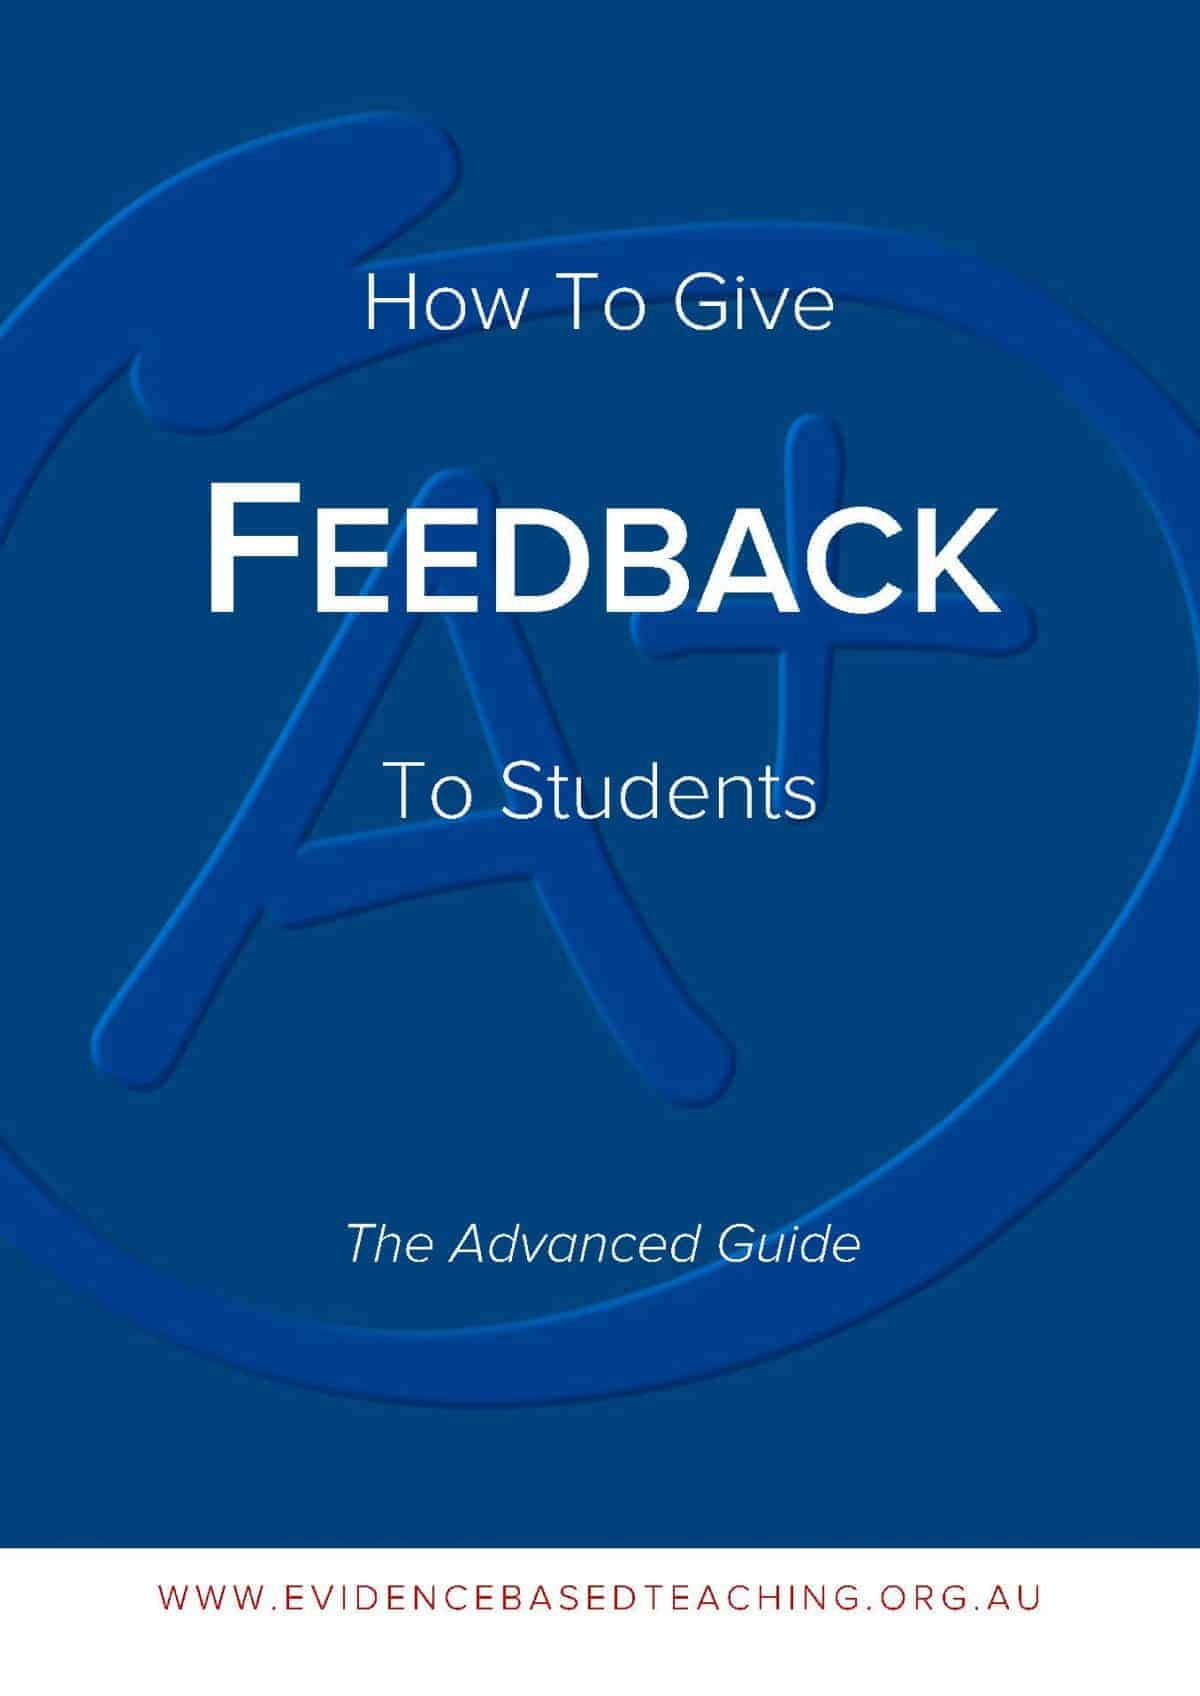 How to Give Feedback to Students cover image - effective feedback